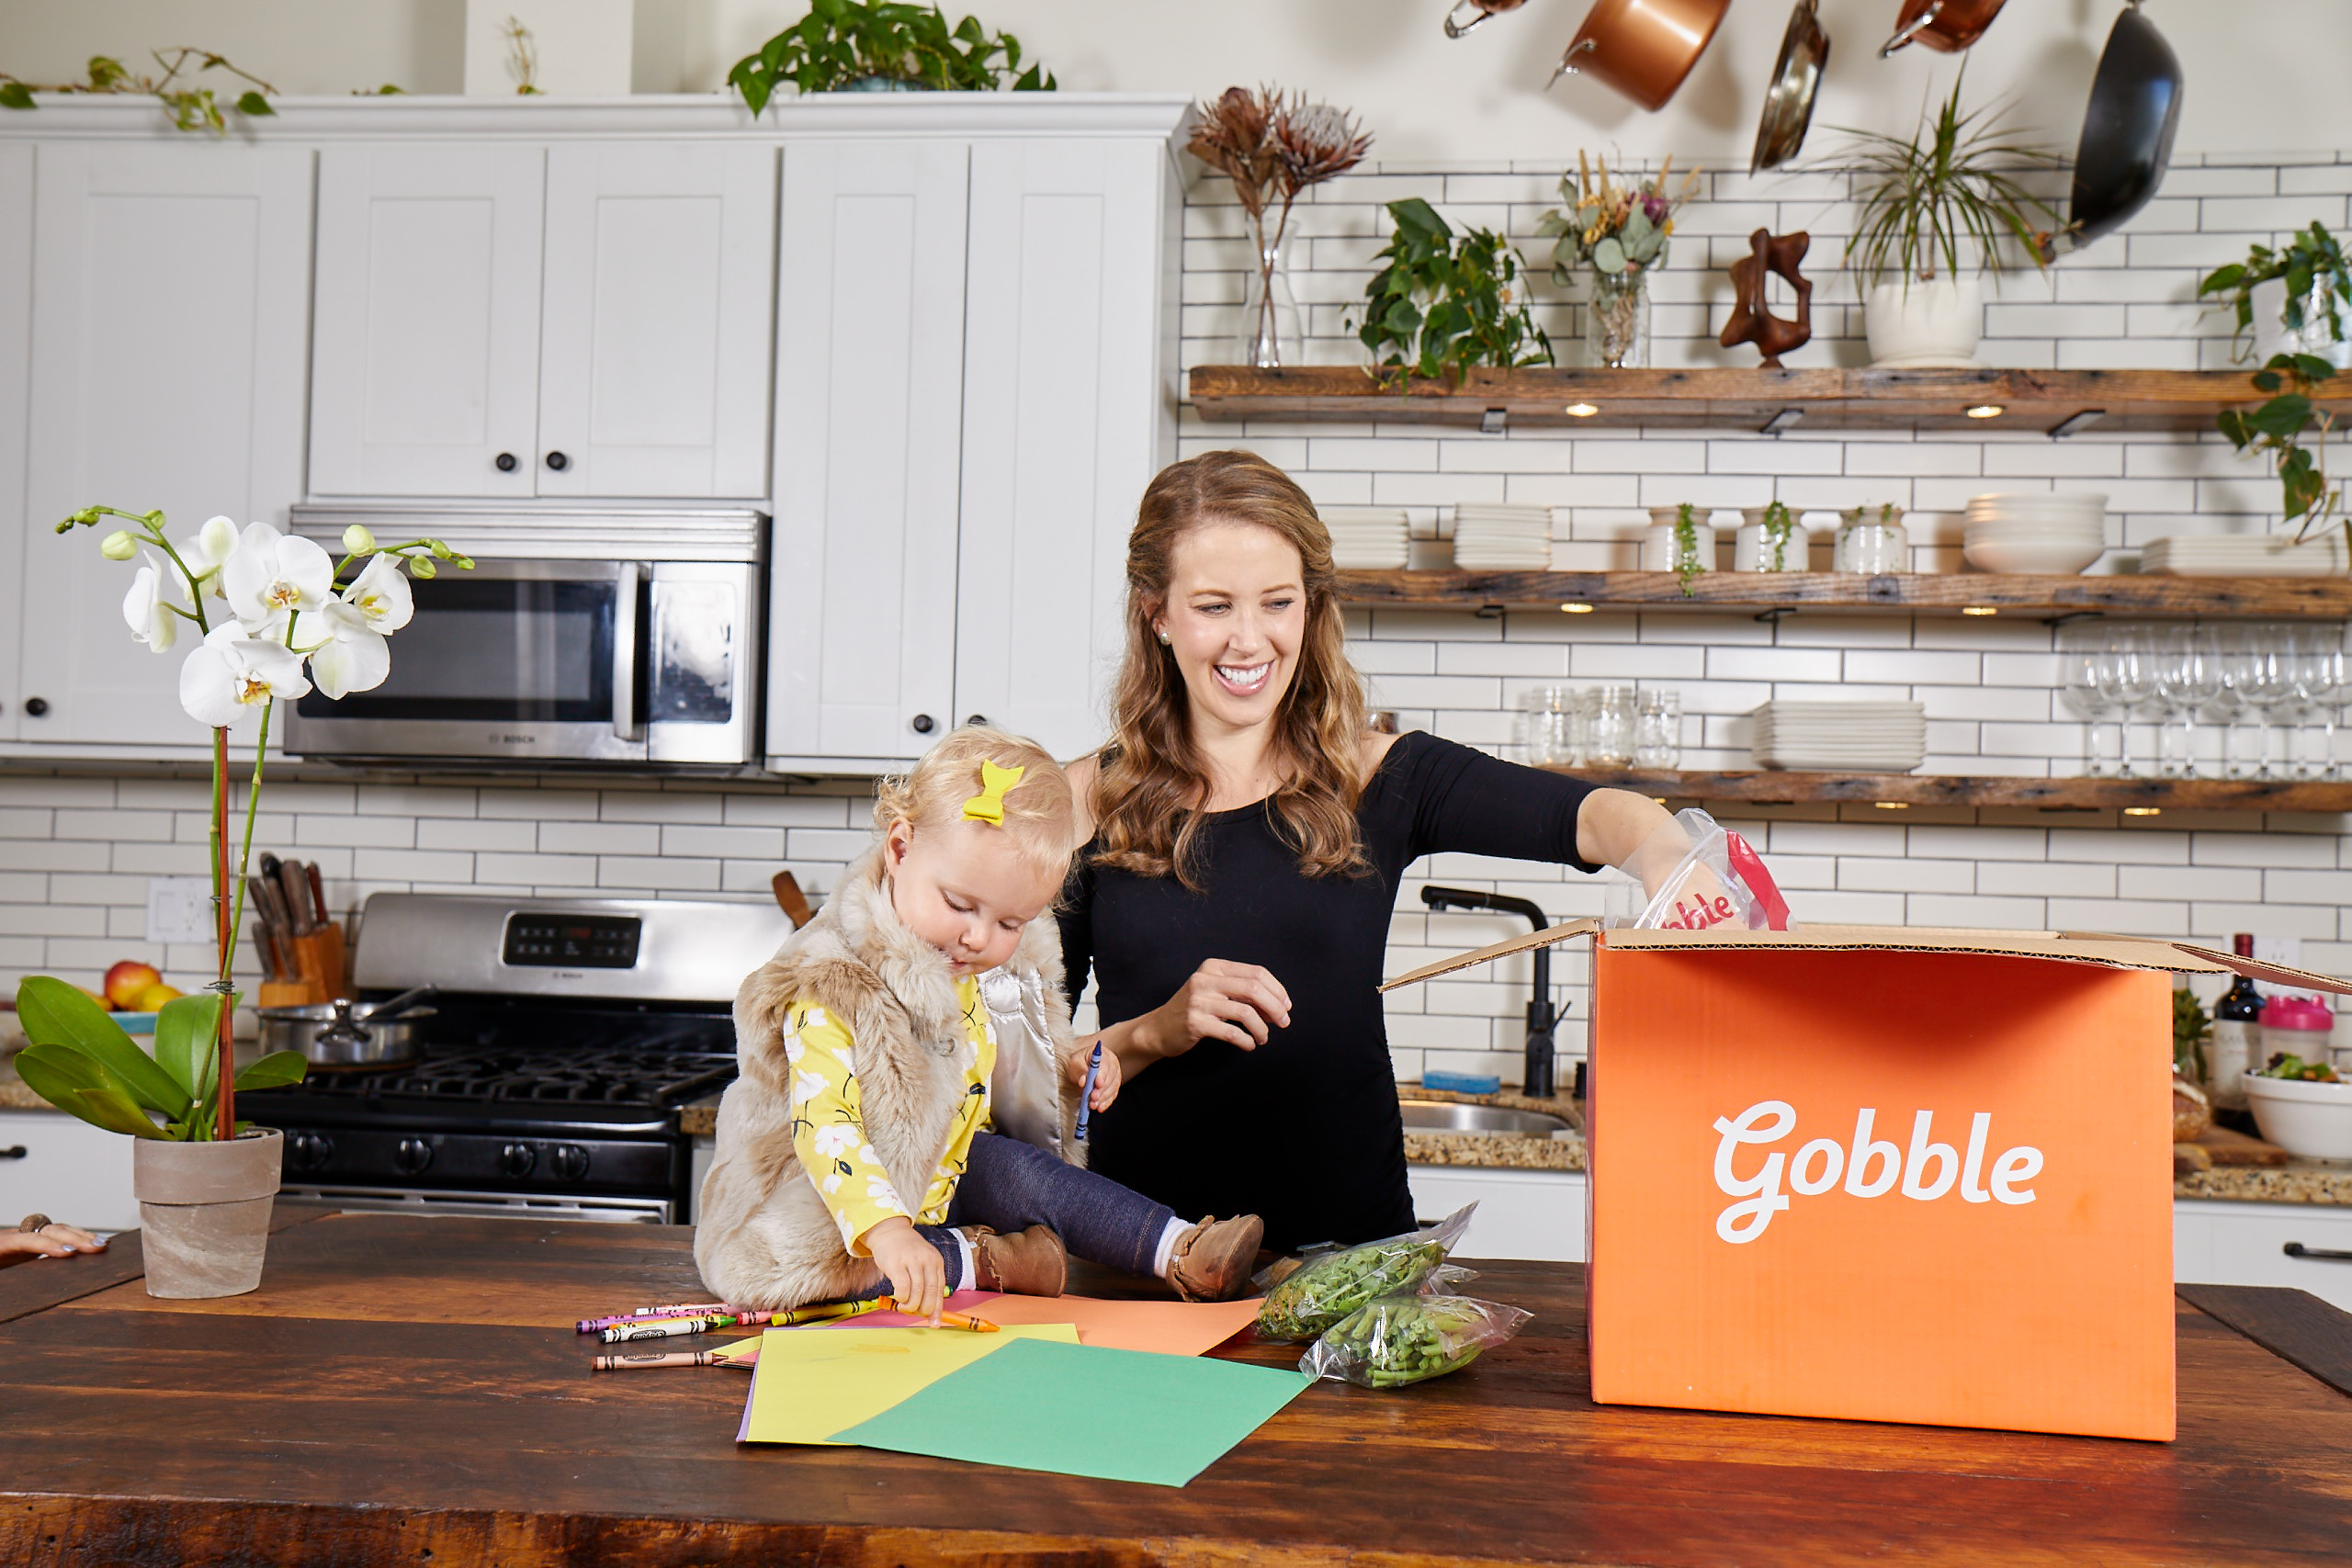 A woman opens a Gobble meal kit box while her young daughter sits on the counter and watches